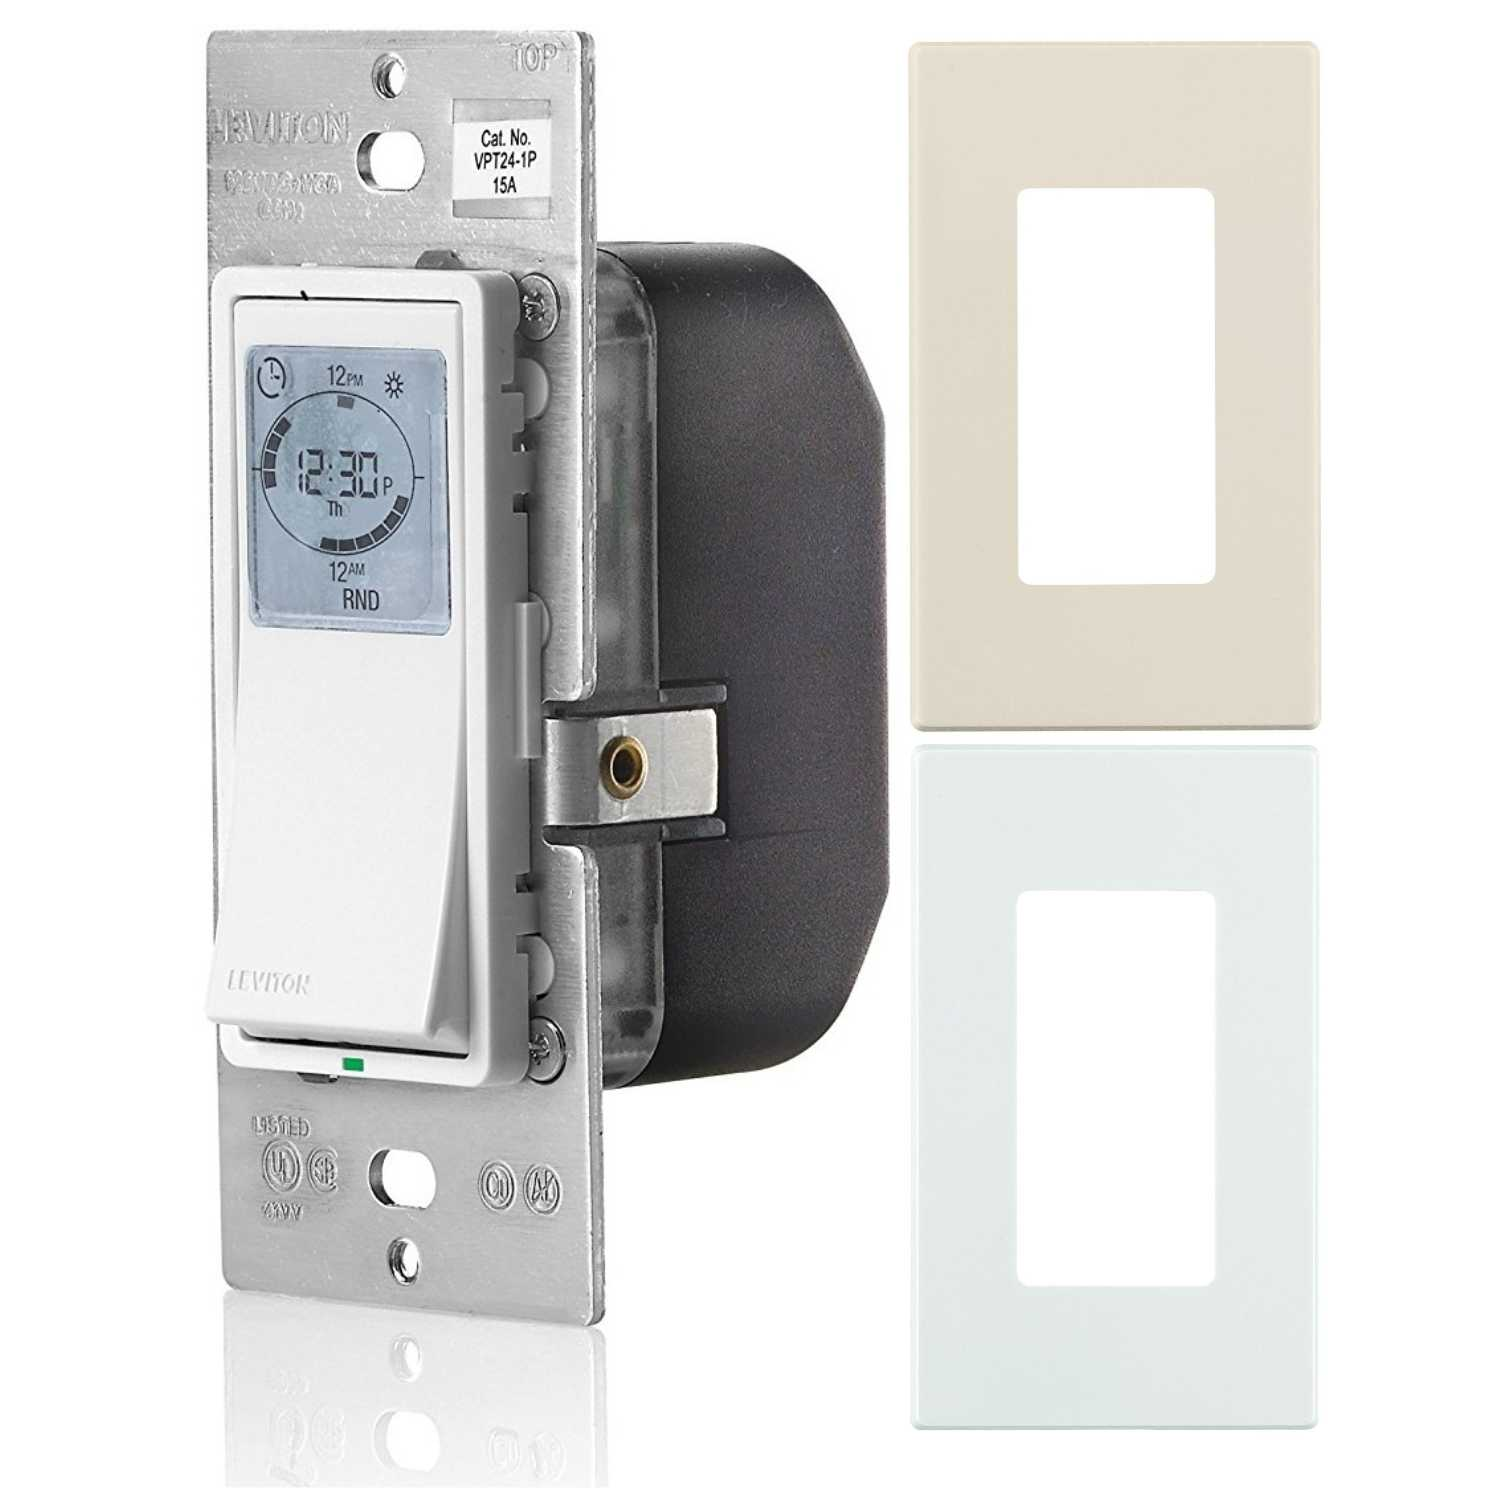 Leviton Vizia 24-Hour Programmable Indoor Timer with Snap-on Wall Plates by Leviton